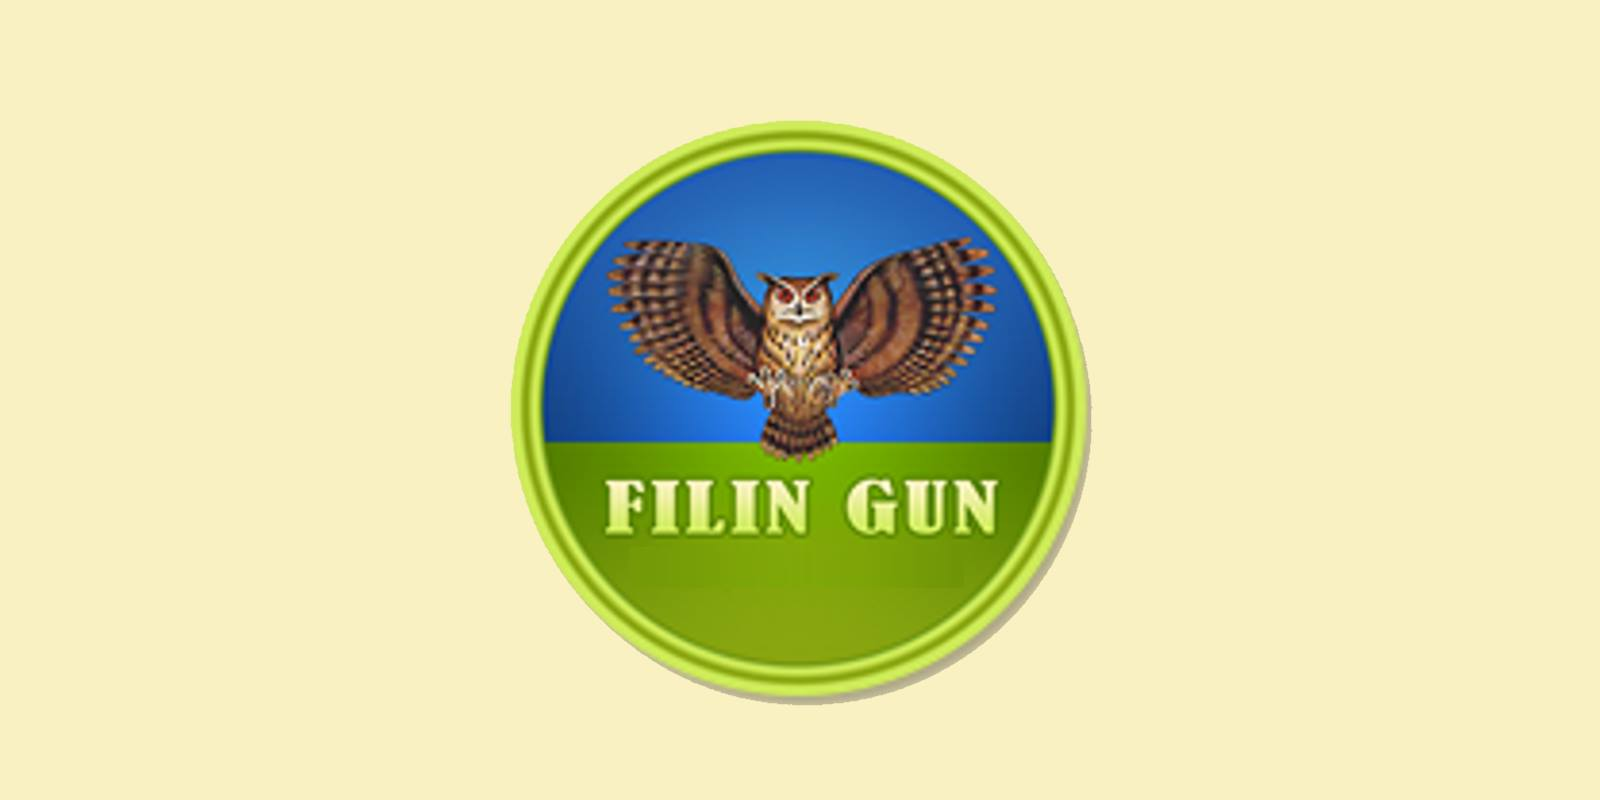 filingun-logo-big